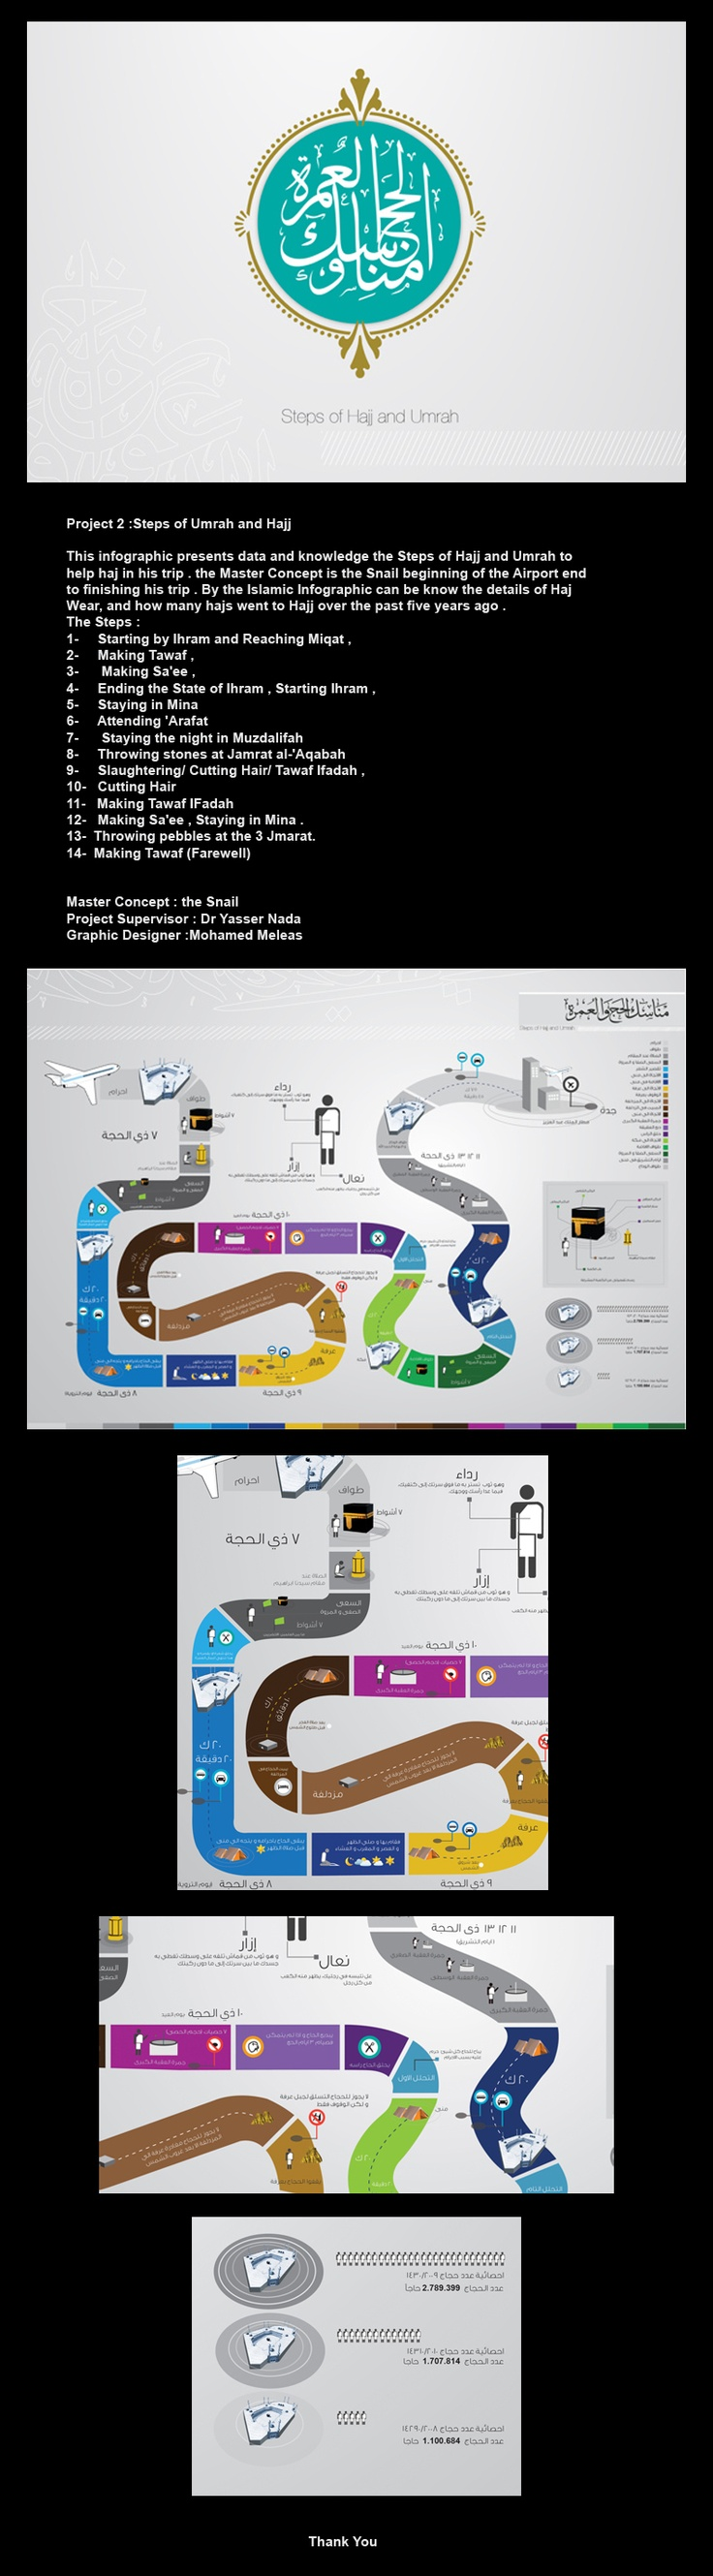 Project 2 : Steps of Umrah and Hajj   This infographic presents data and knowledge the Steps of Hajj and Umrah to help haj in his trip . the Master